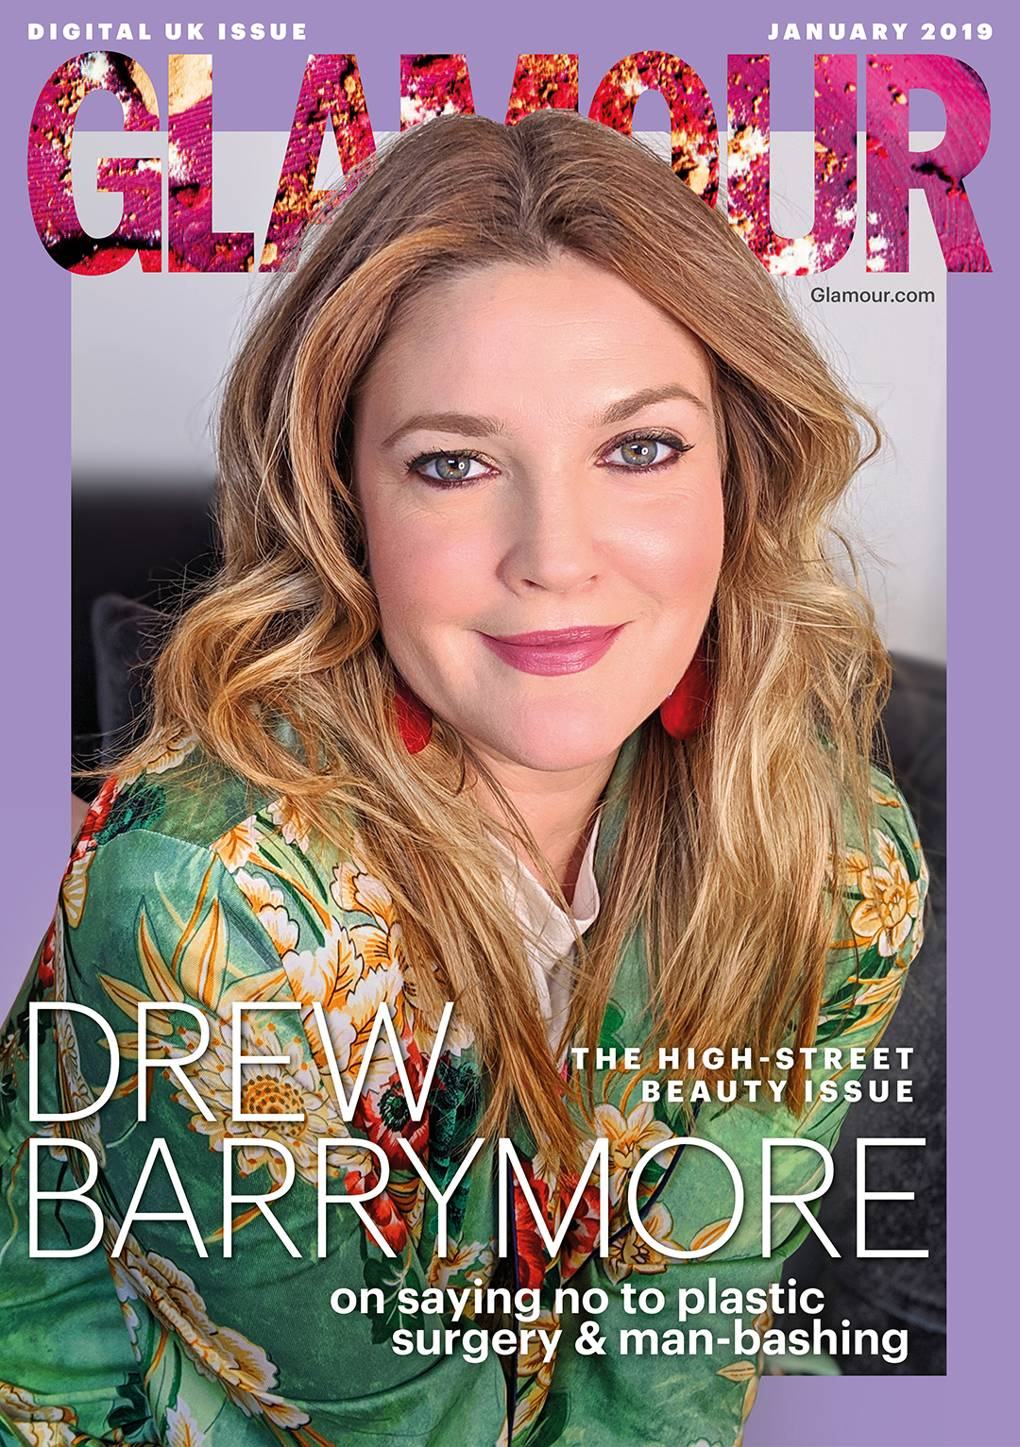 2019 Drew Barrymore nude photos 2019